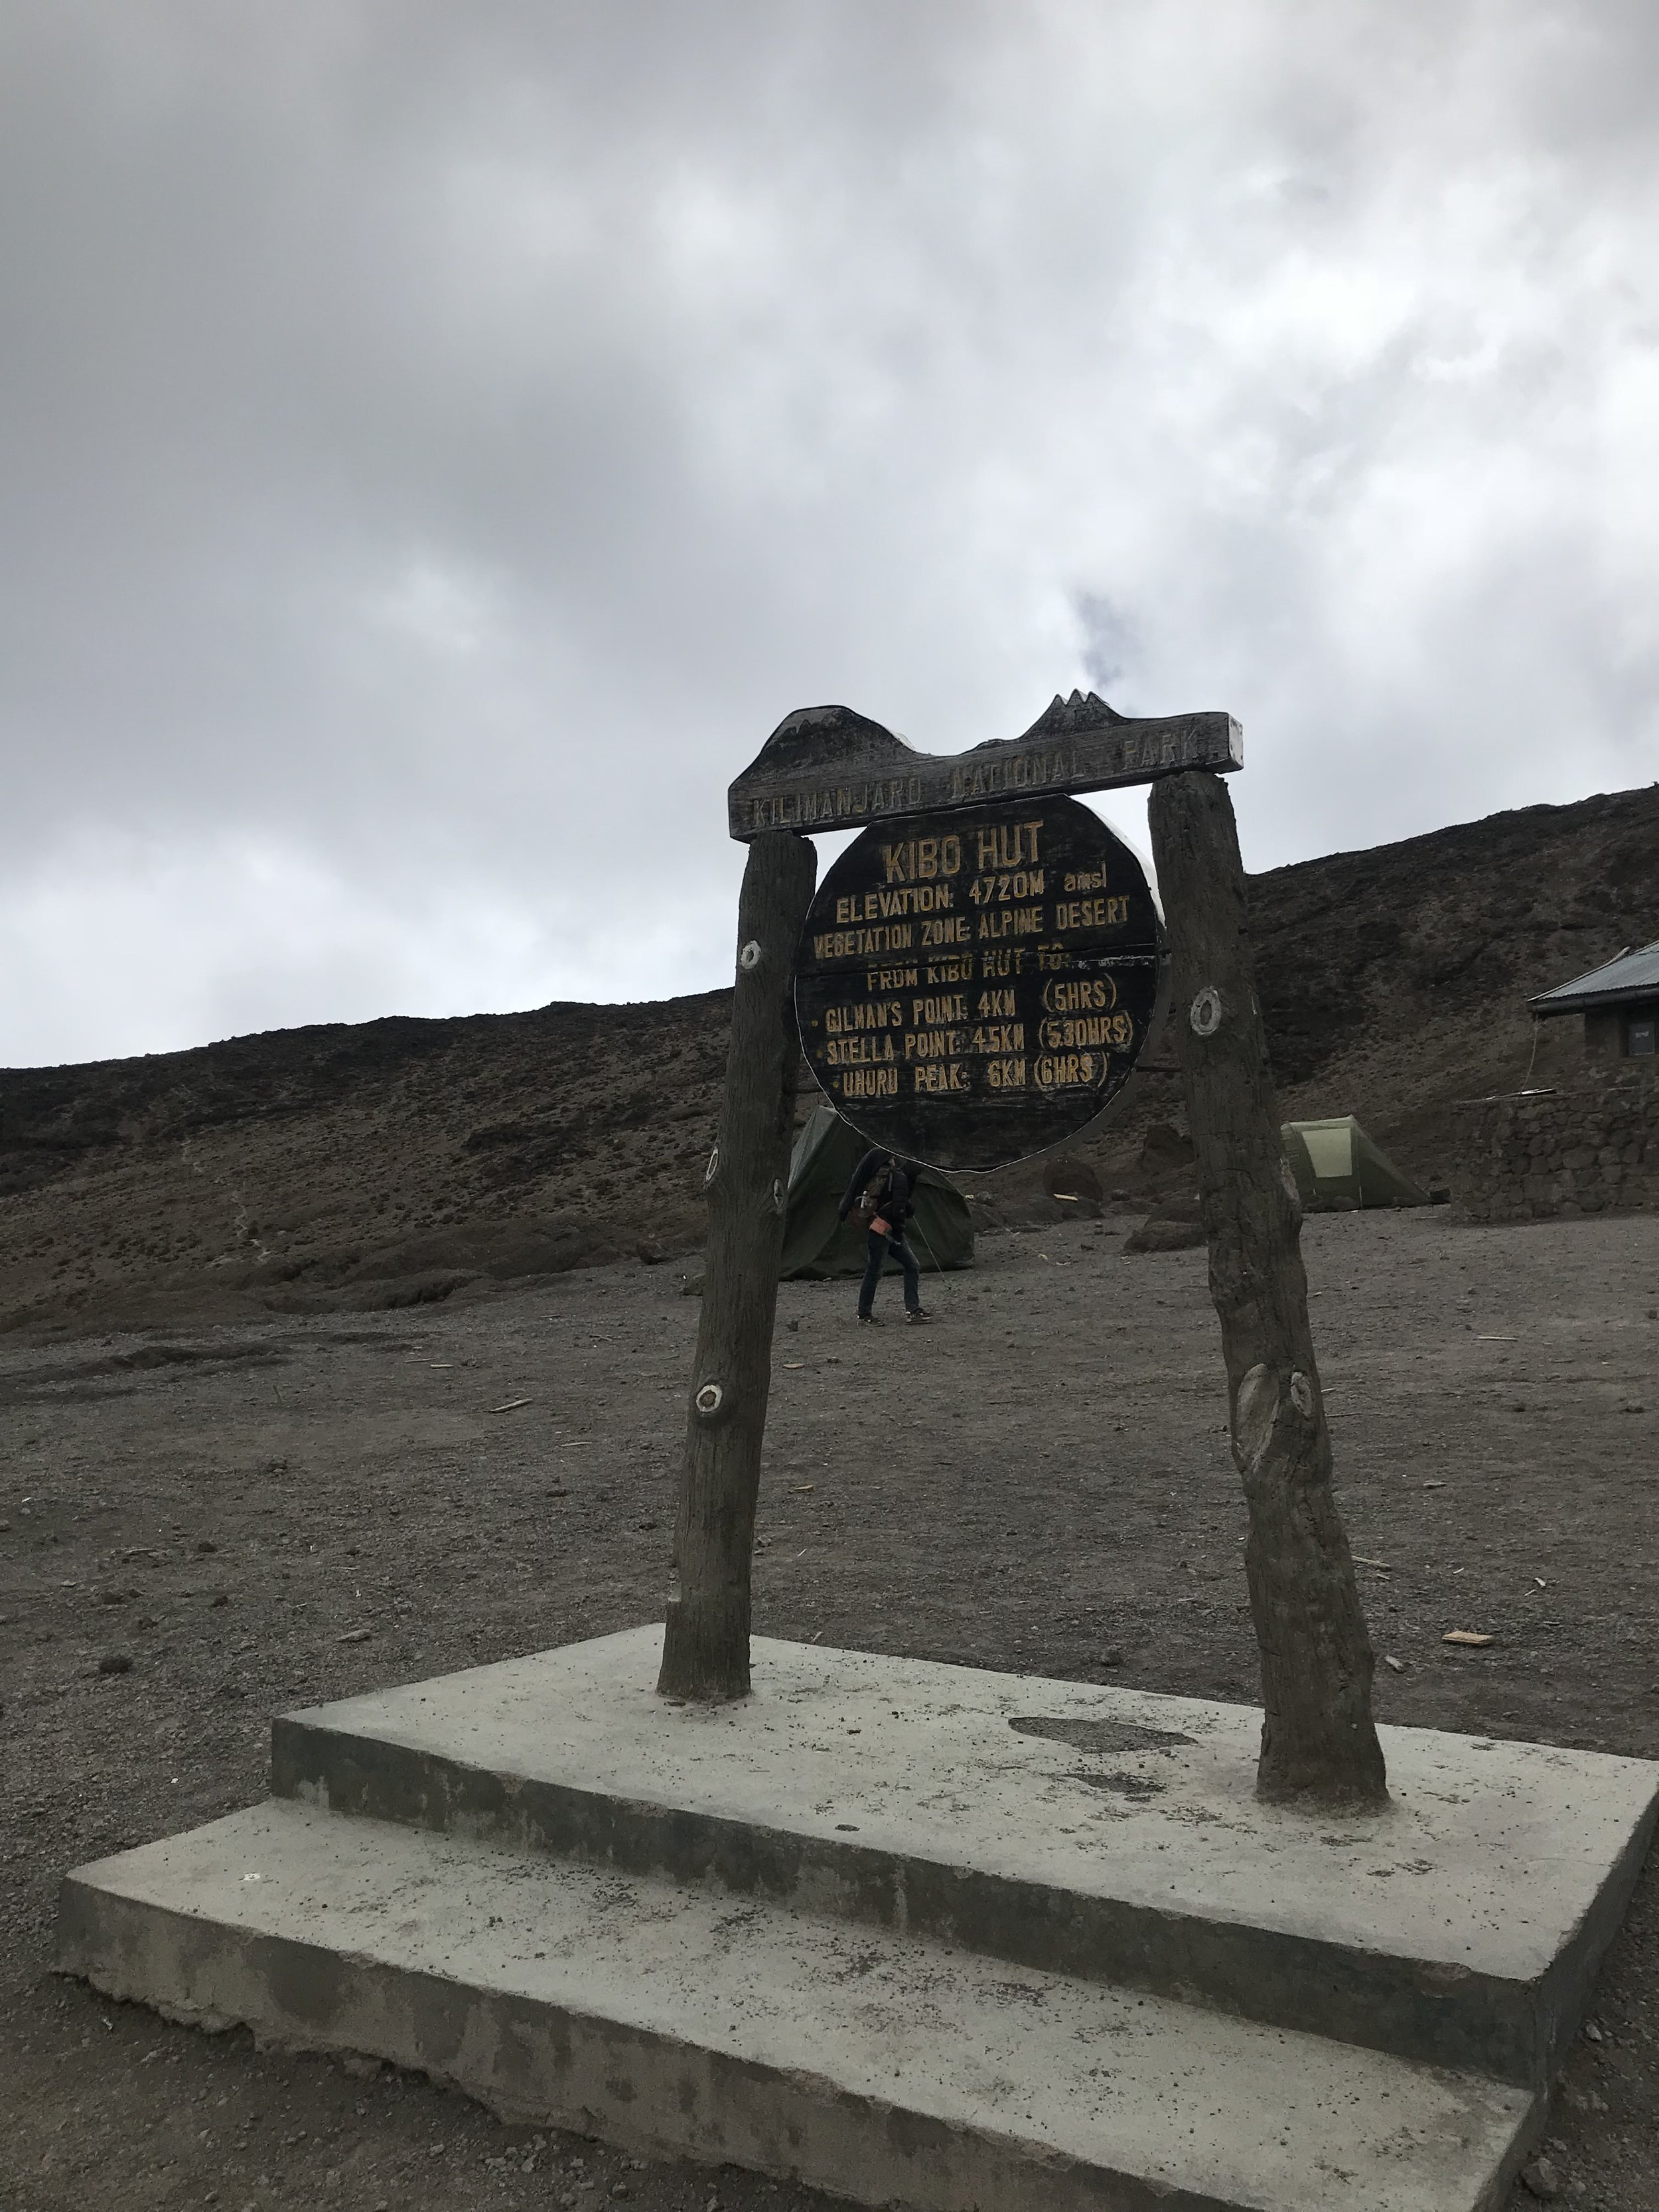 We made it to the top huts! 15, 485' above sea level.